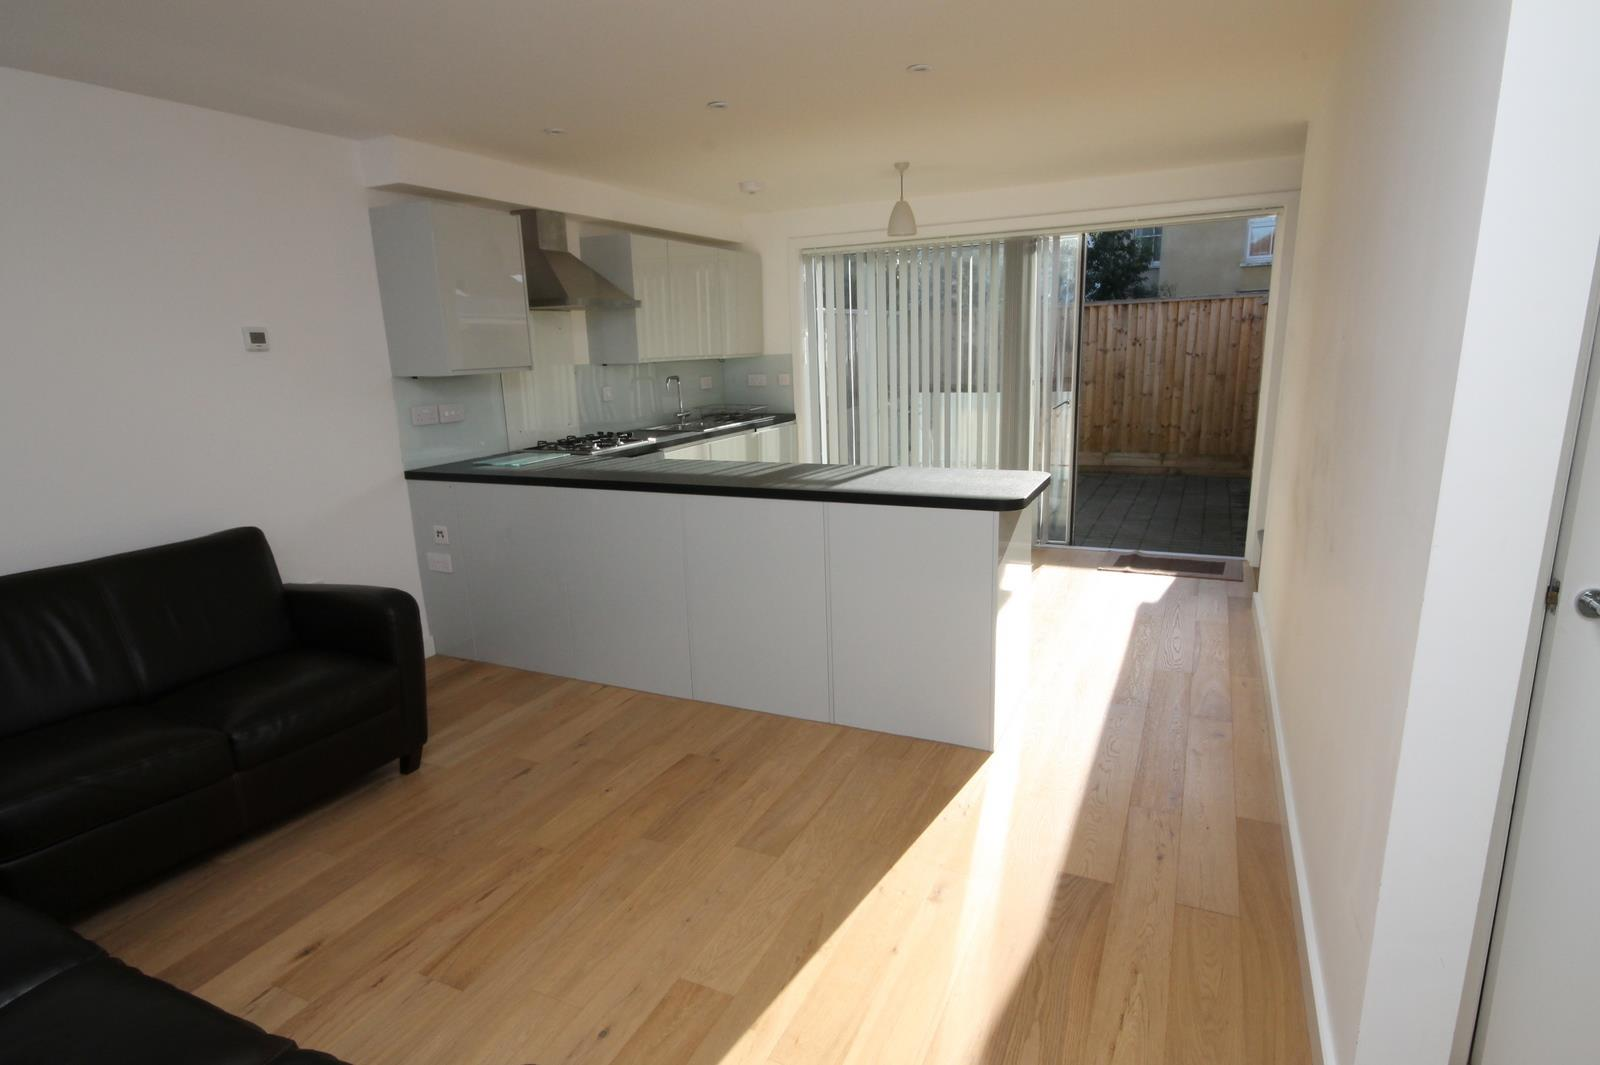 2 bed house to rent in Pembroke Avenue, Bristol, BS11